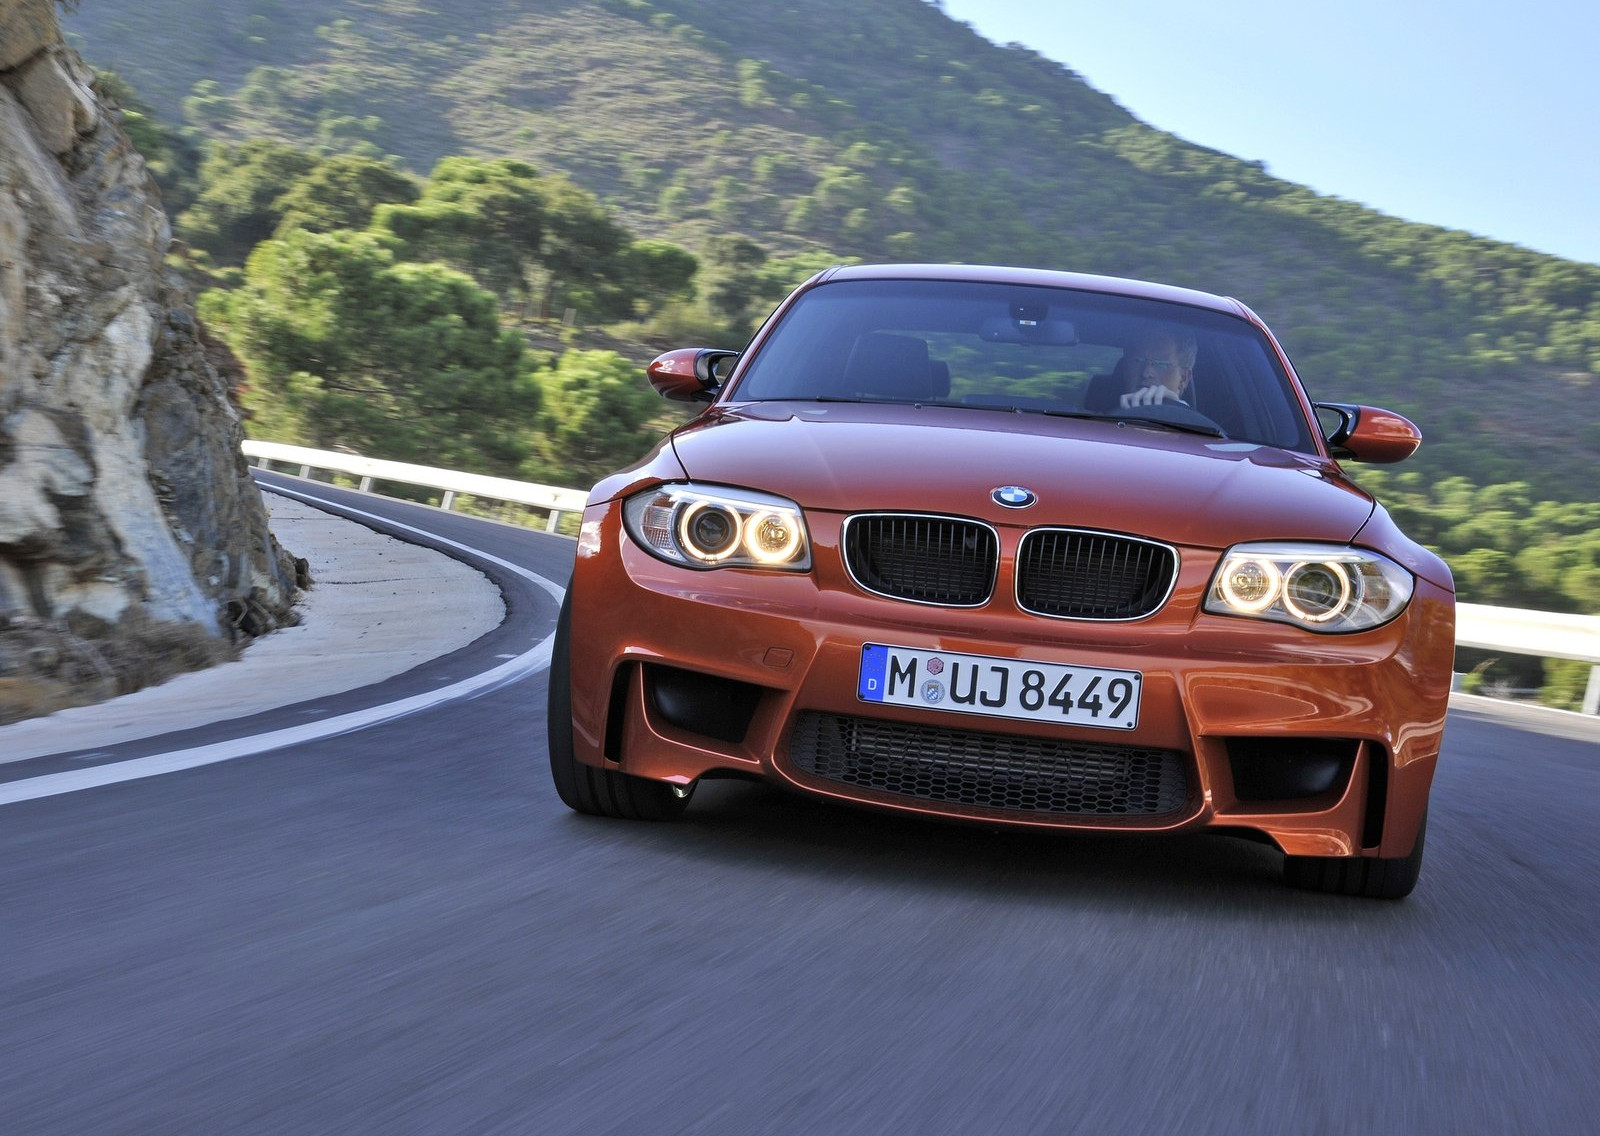 Bmw 1 Series M Coupe To Pace Races At Rolex 24 In Daytona Modified 740li